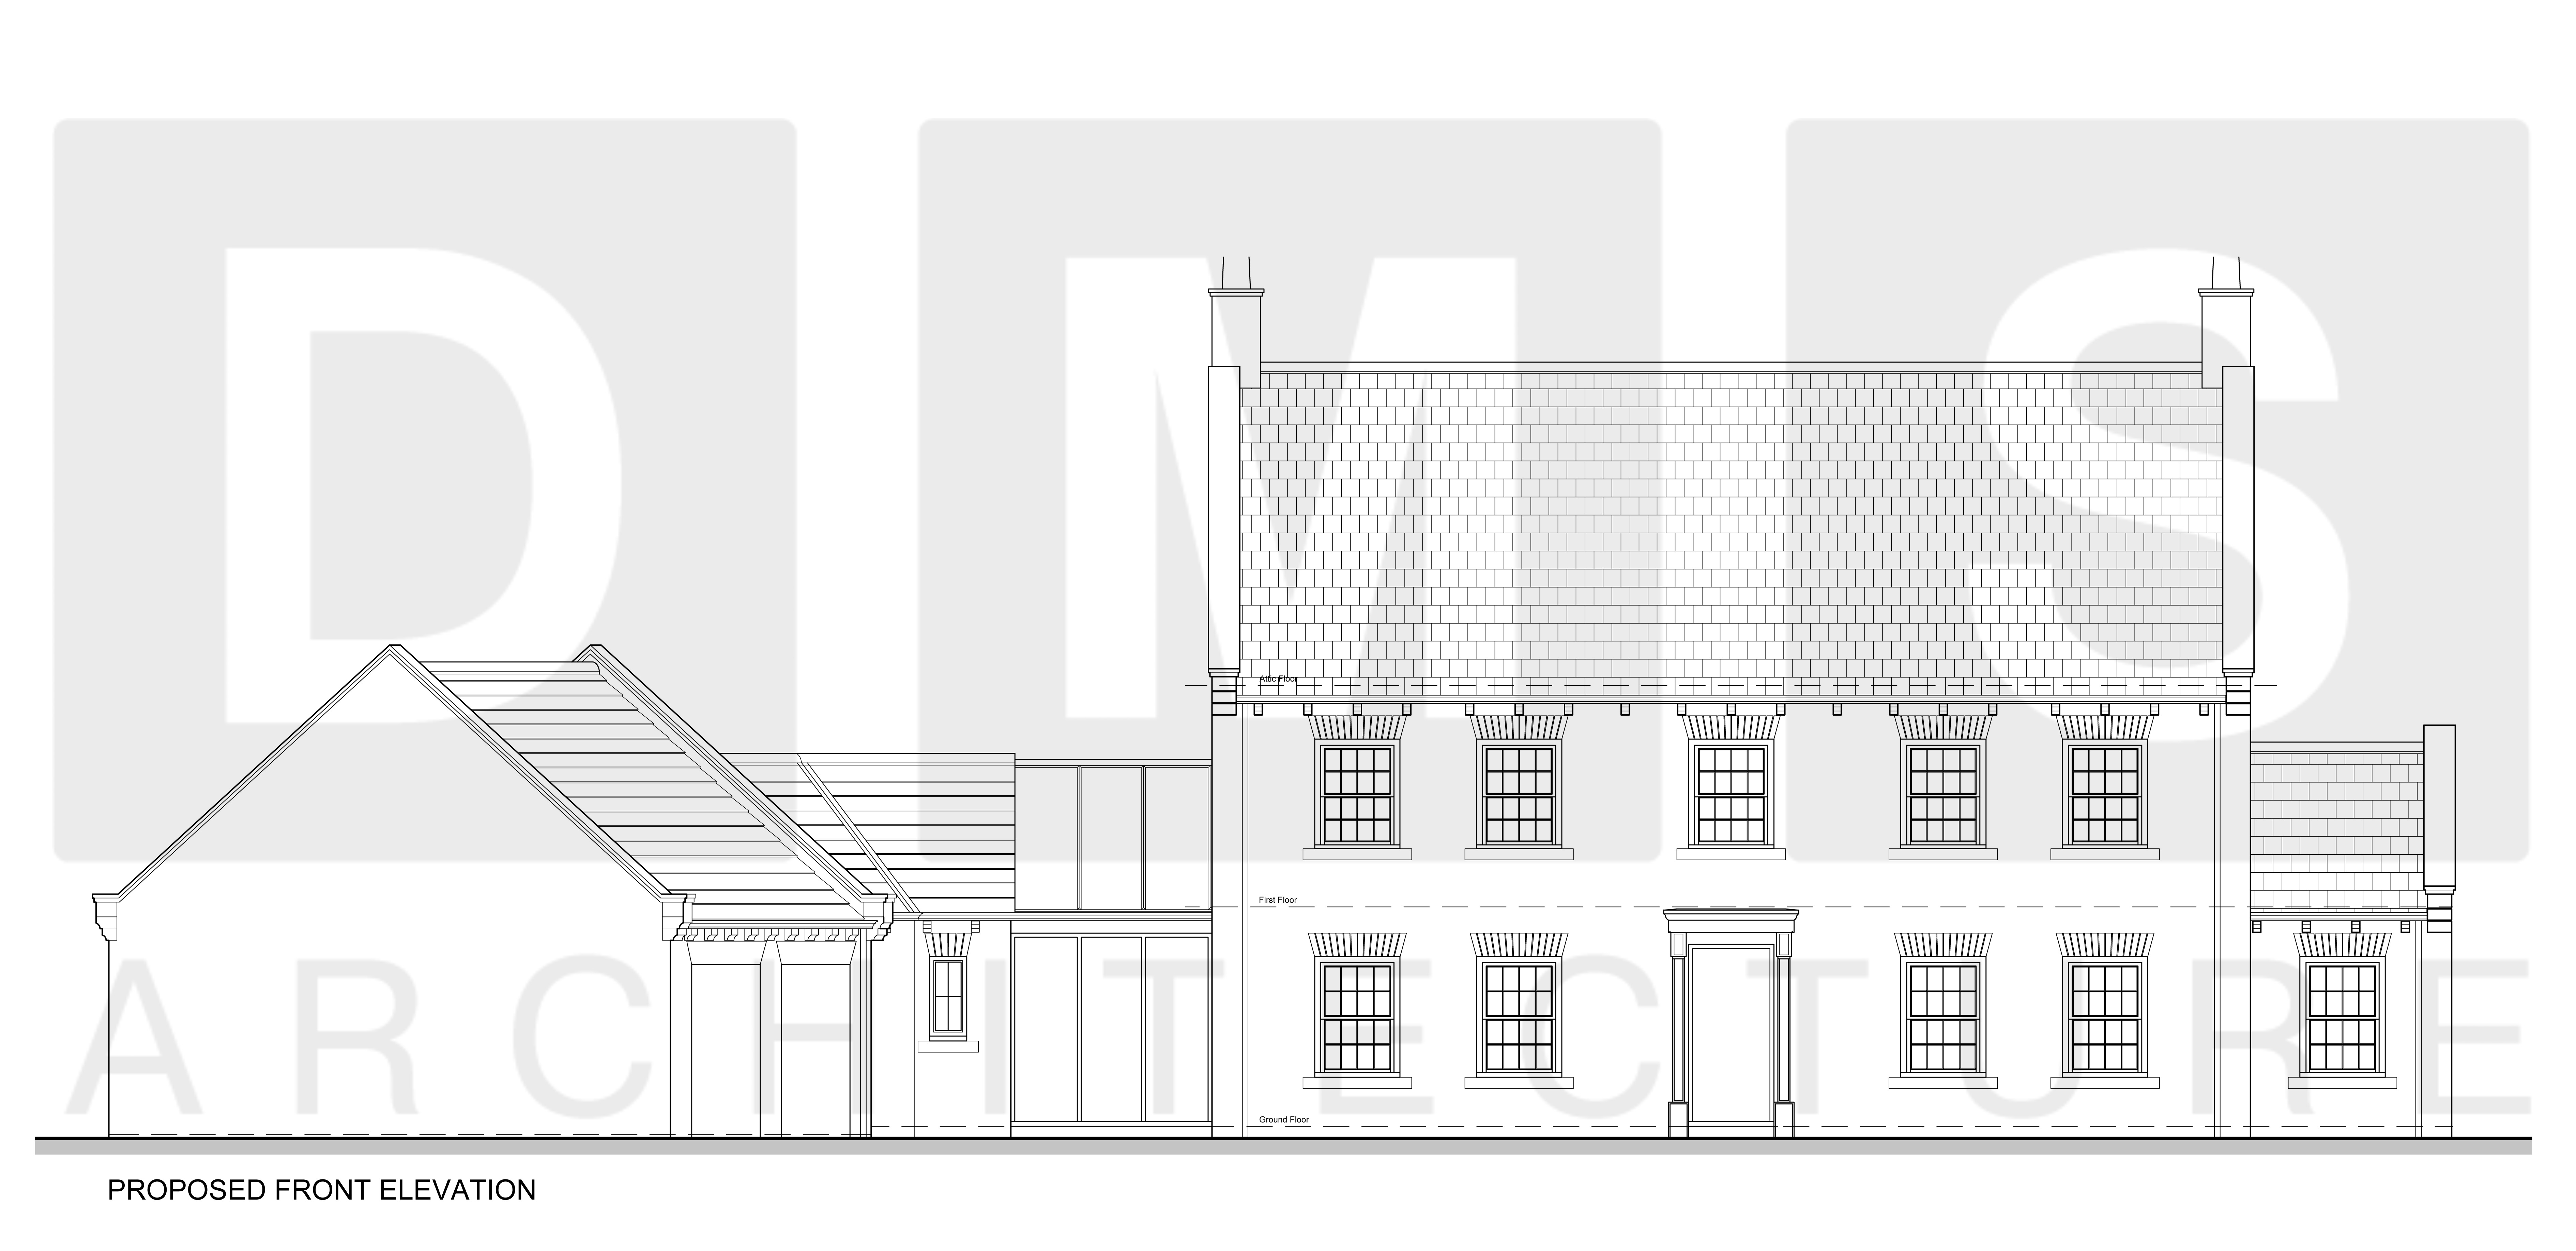 004 - Proposed Elevations ( 1 of 2 )